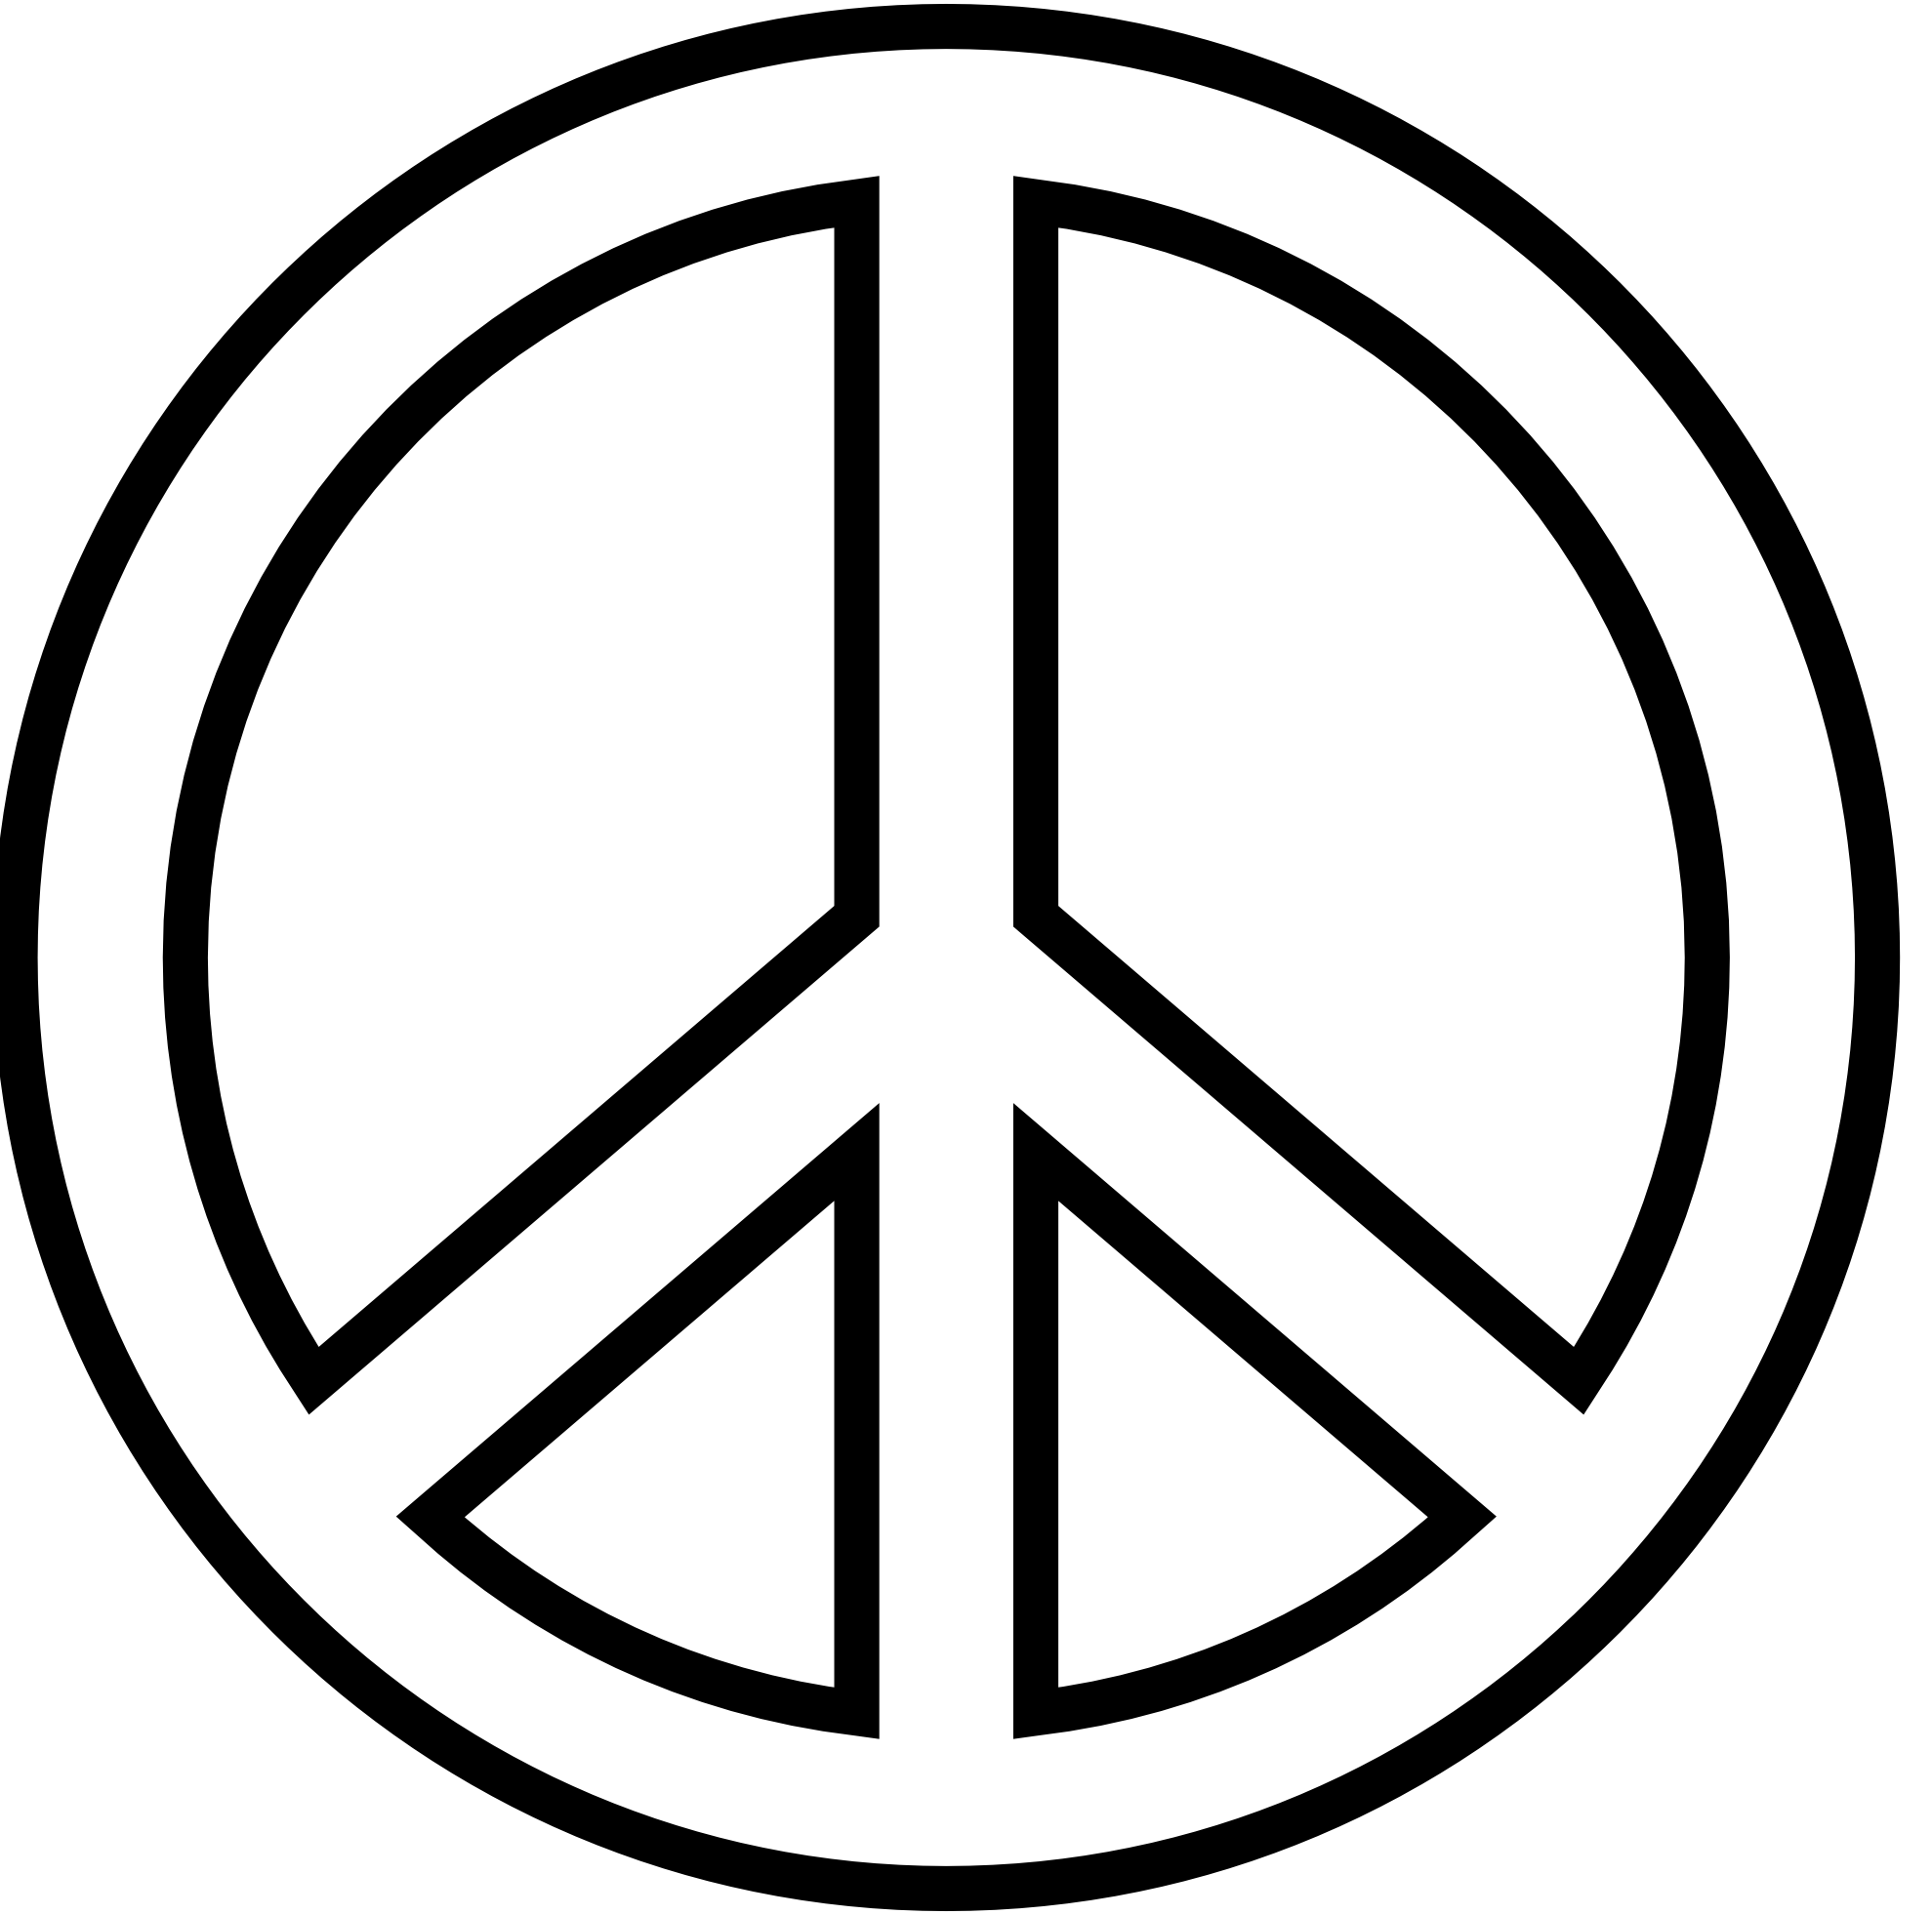 Clipart peace sign love